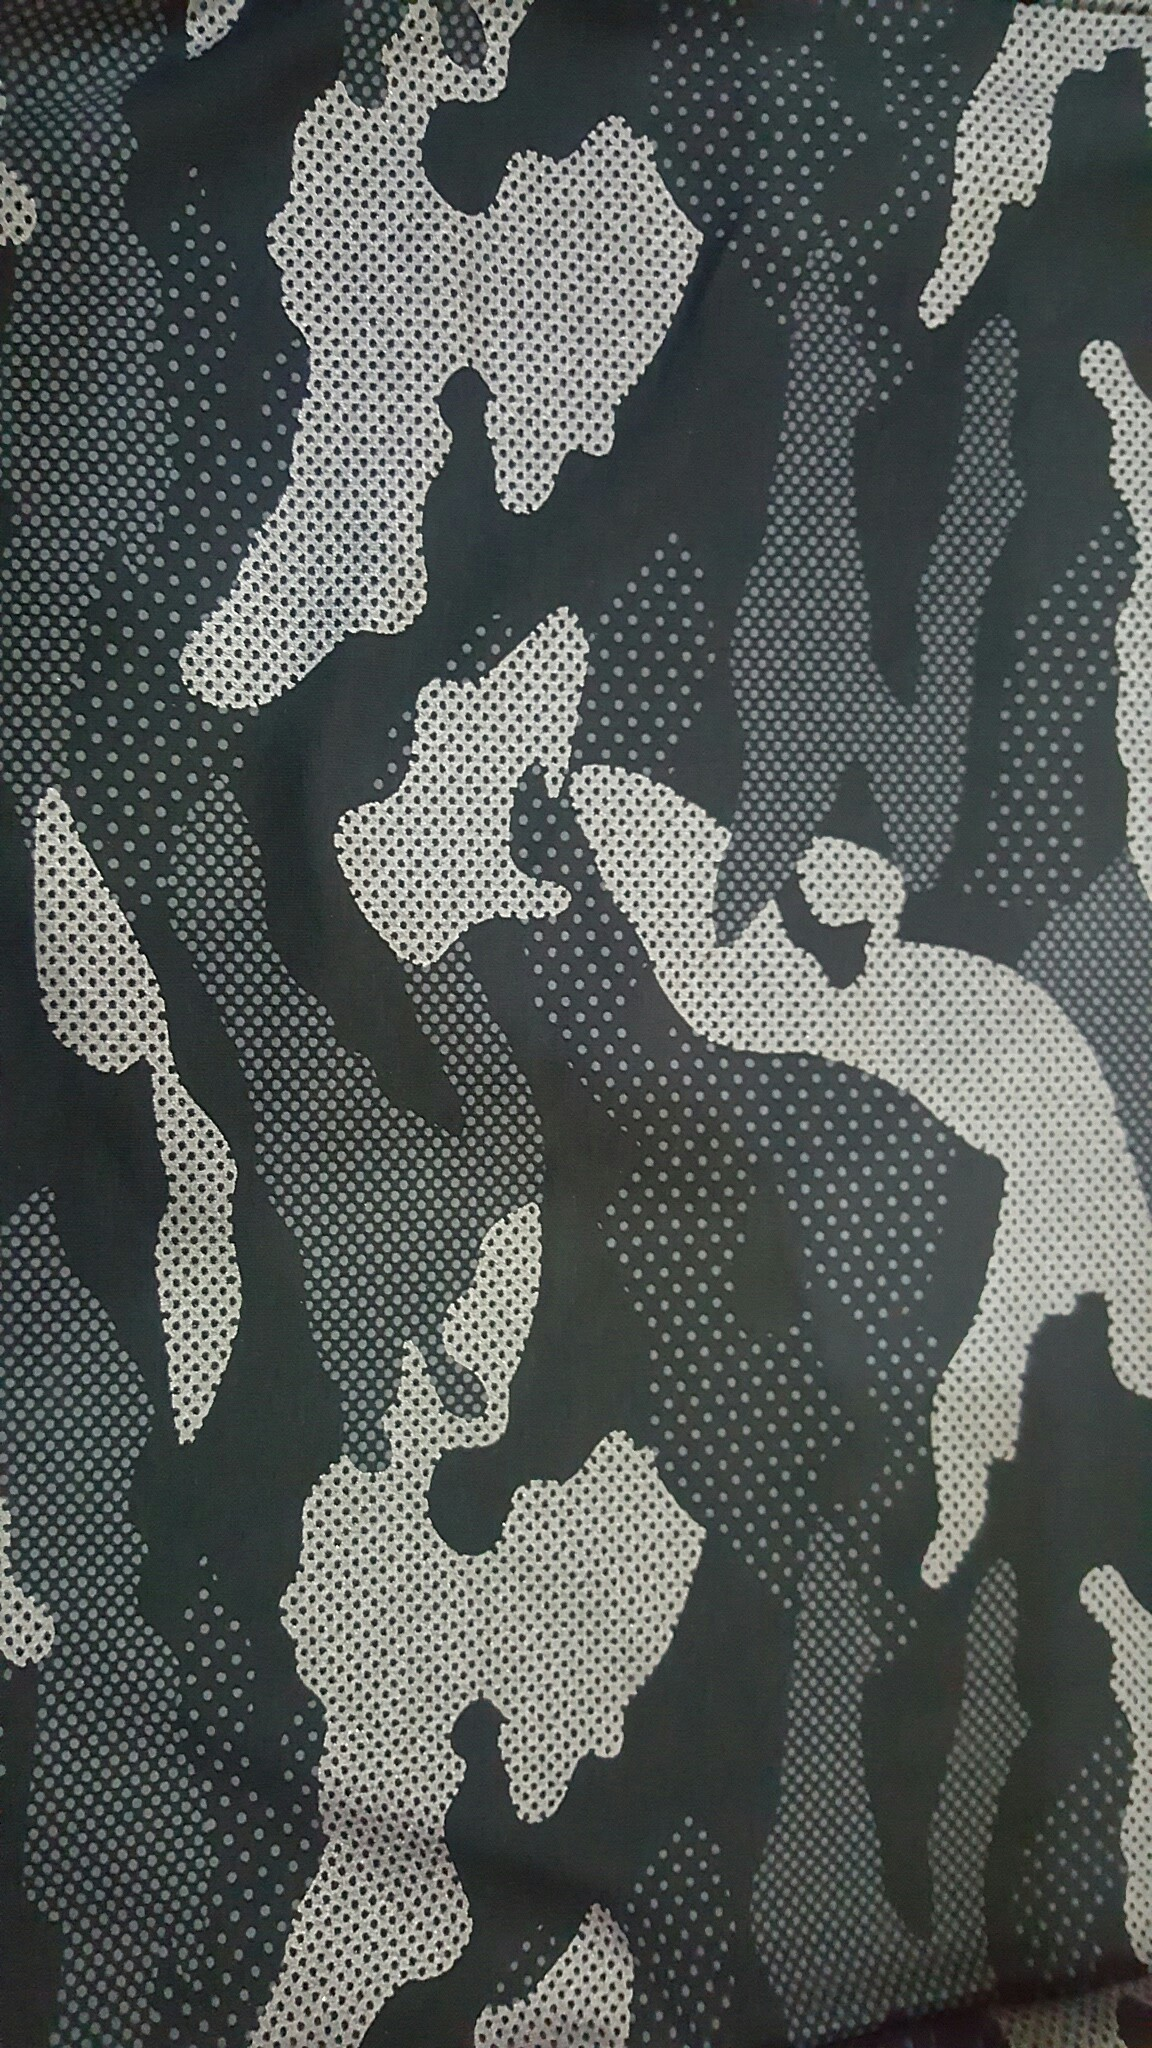 1152x2048 Moulton. Camouflage WallpaperRealtree ...